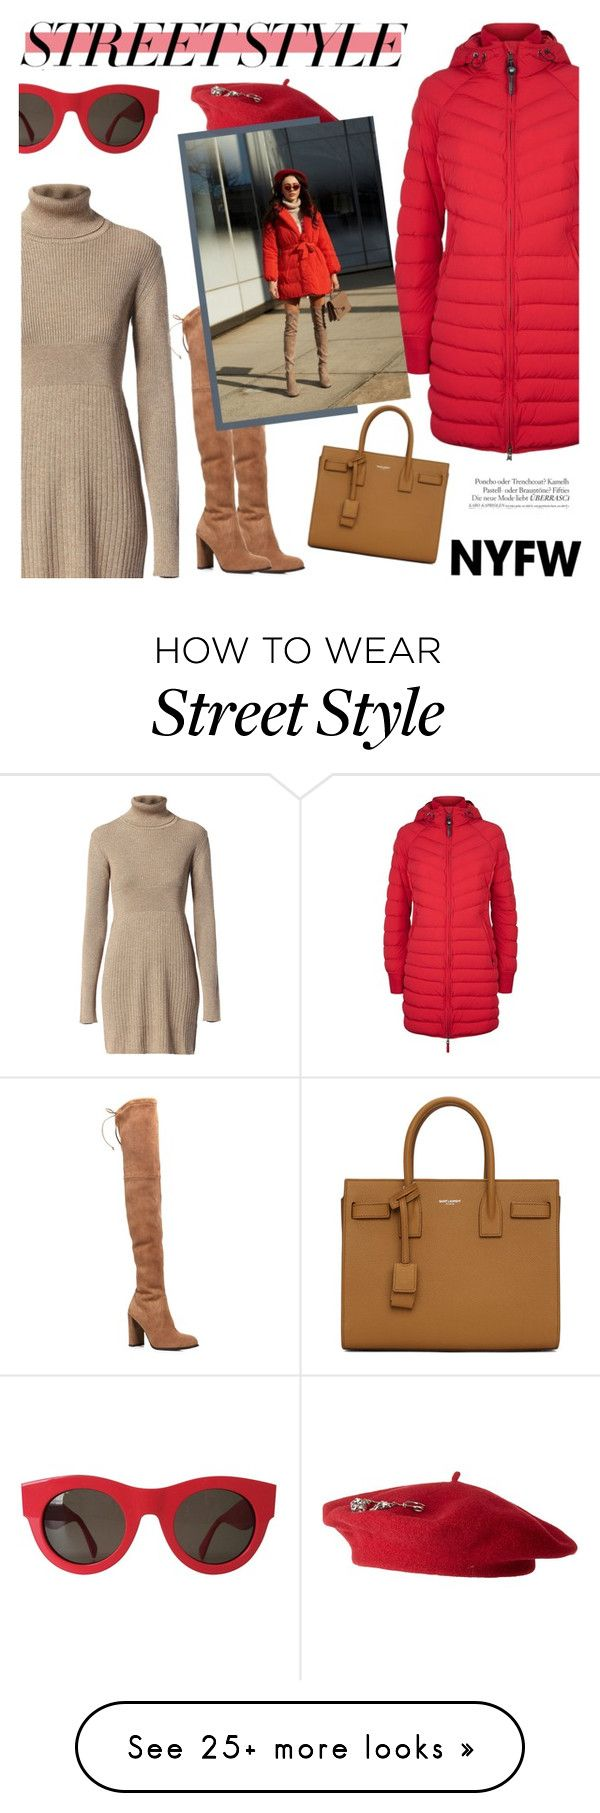 """street style"" by freshprincesse on Polyvore featuring Parajumpers, Diesel, Stuart Weitzman, Yves Saint Laurent, Echo Design, CÉLINE, contestentry, nyfwstreetstyle and polyvoreset"